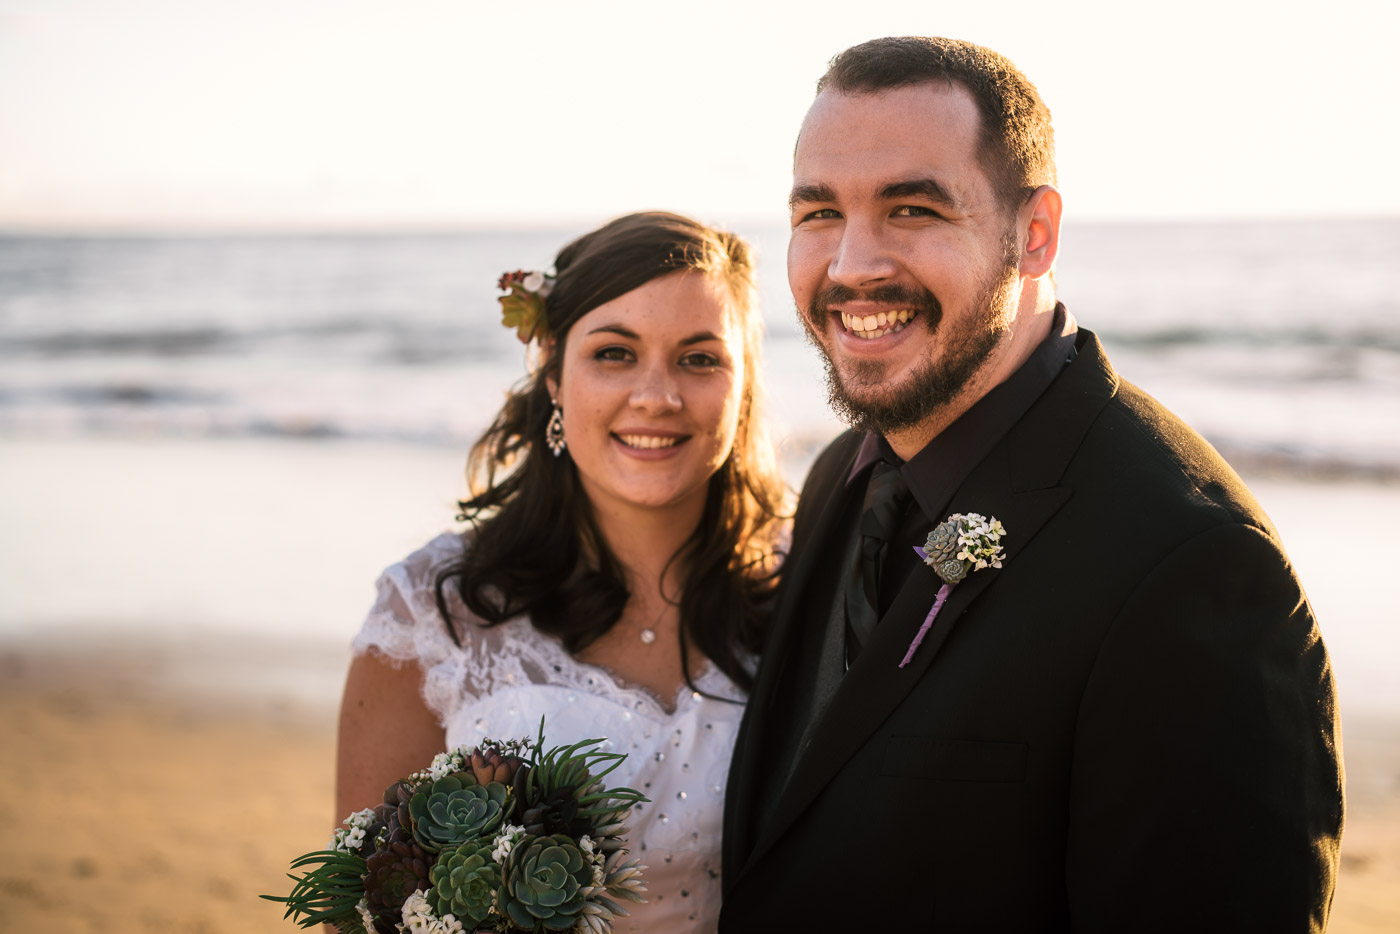 Happy newlywed couple smiles for the camera after their Laguna Beach wedding.